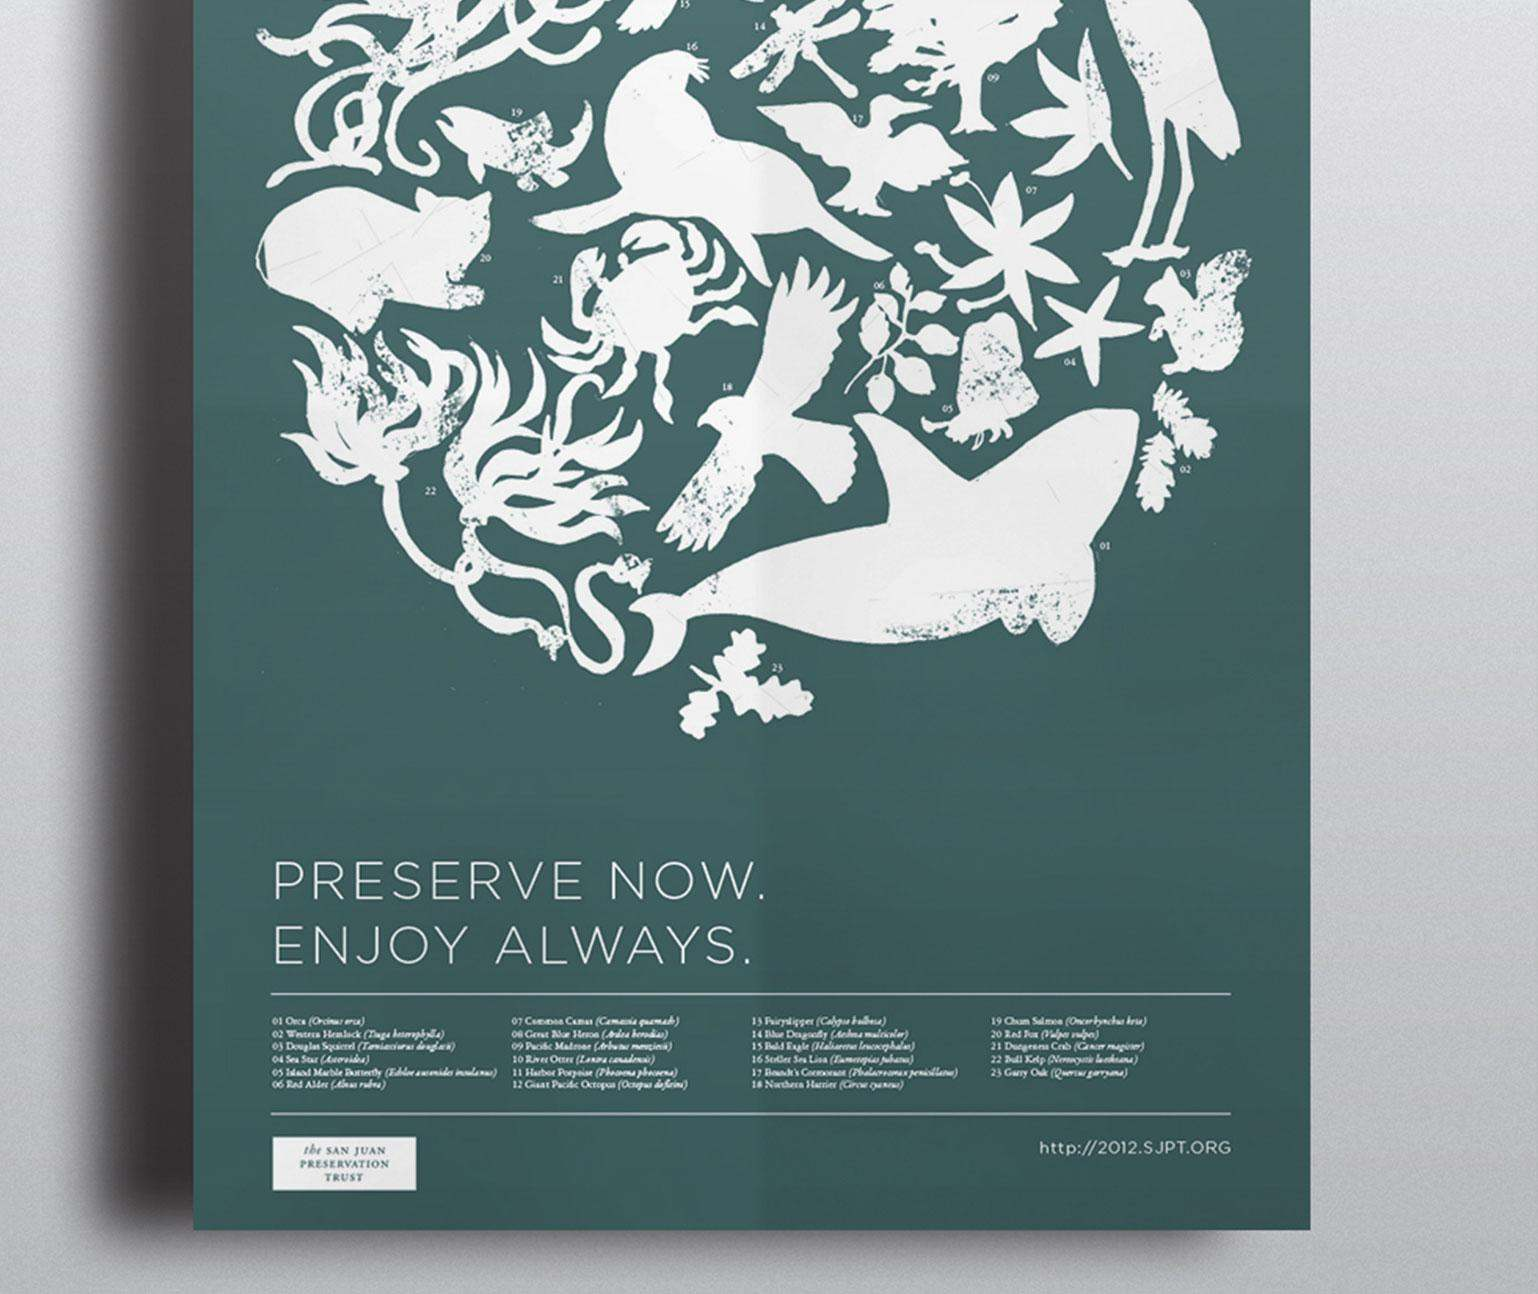 Poster with illustrations of sea animals